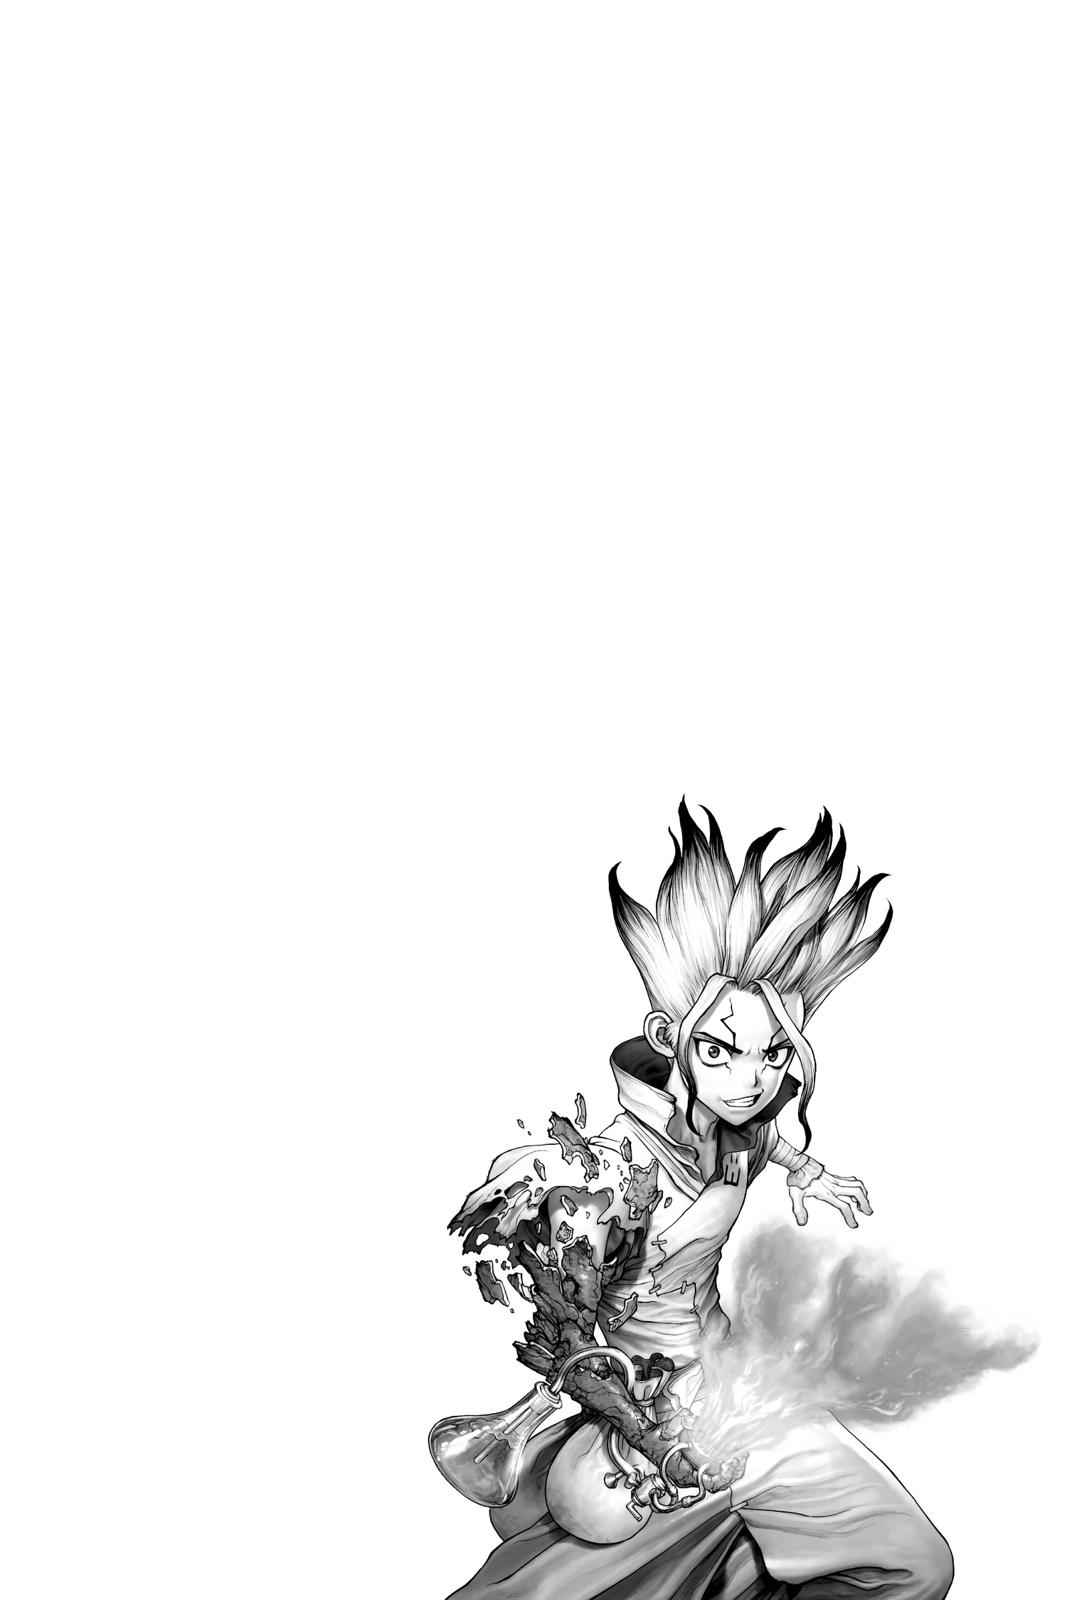 Dr. Stone Chapter 103 Page 19